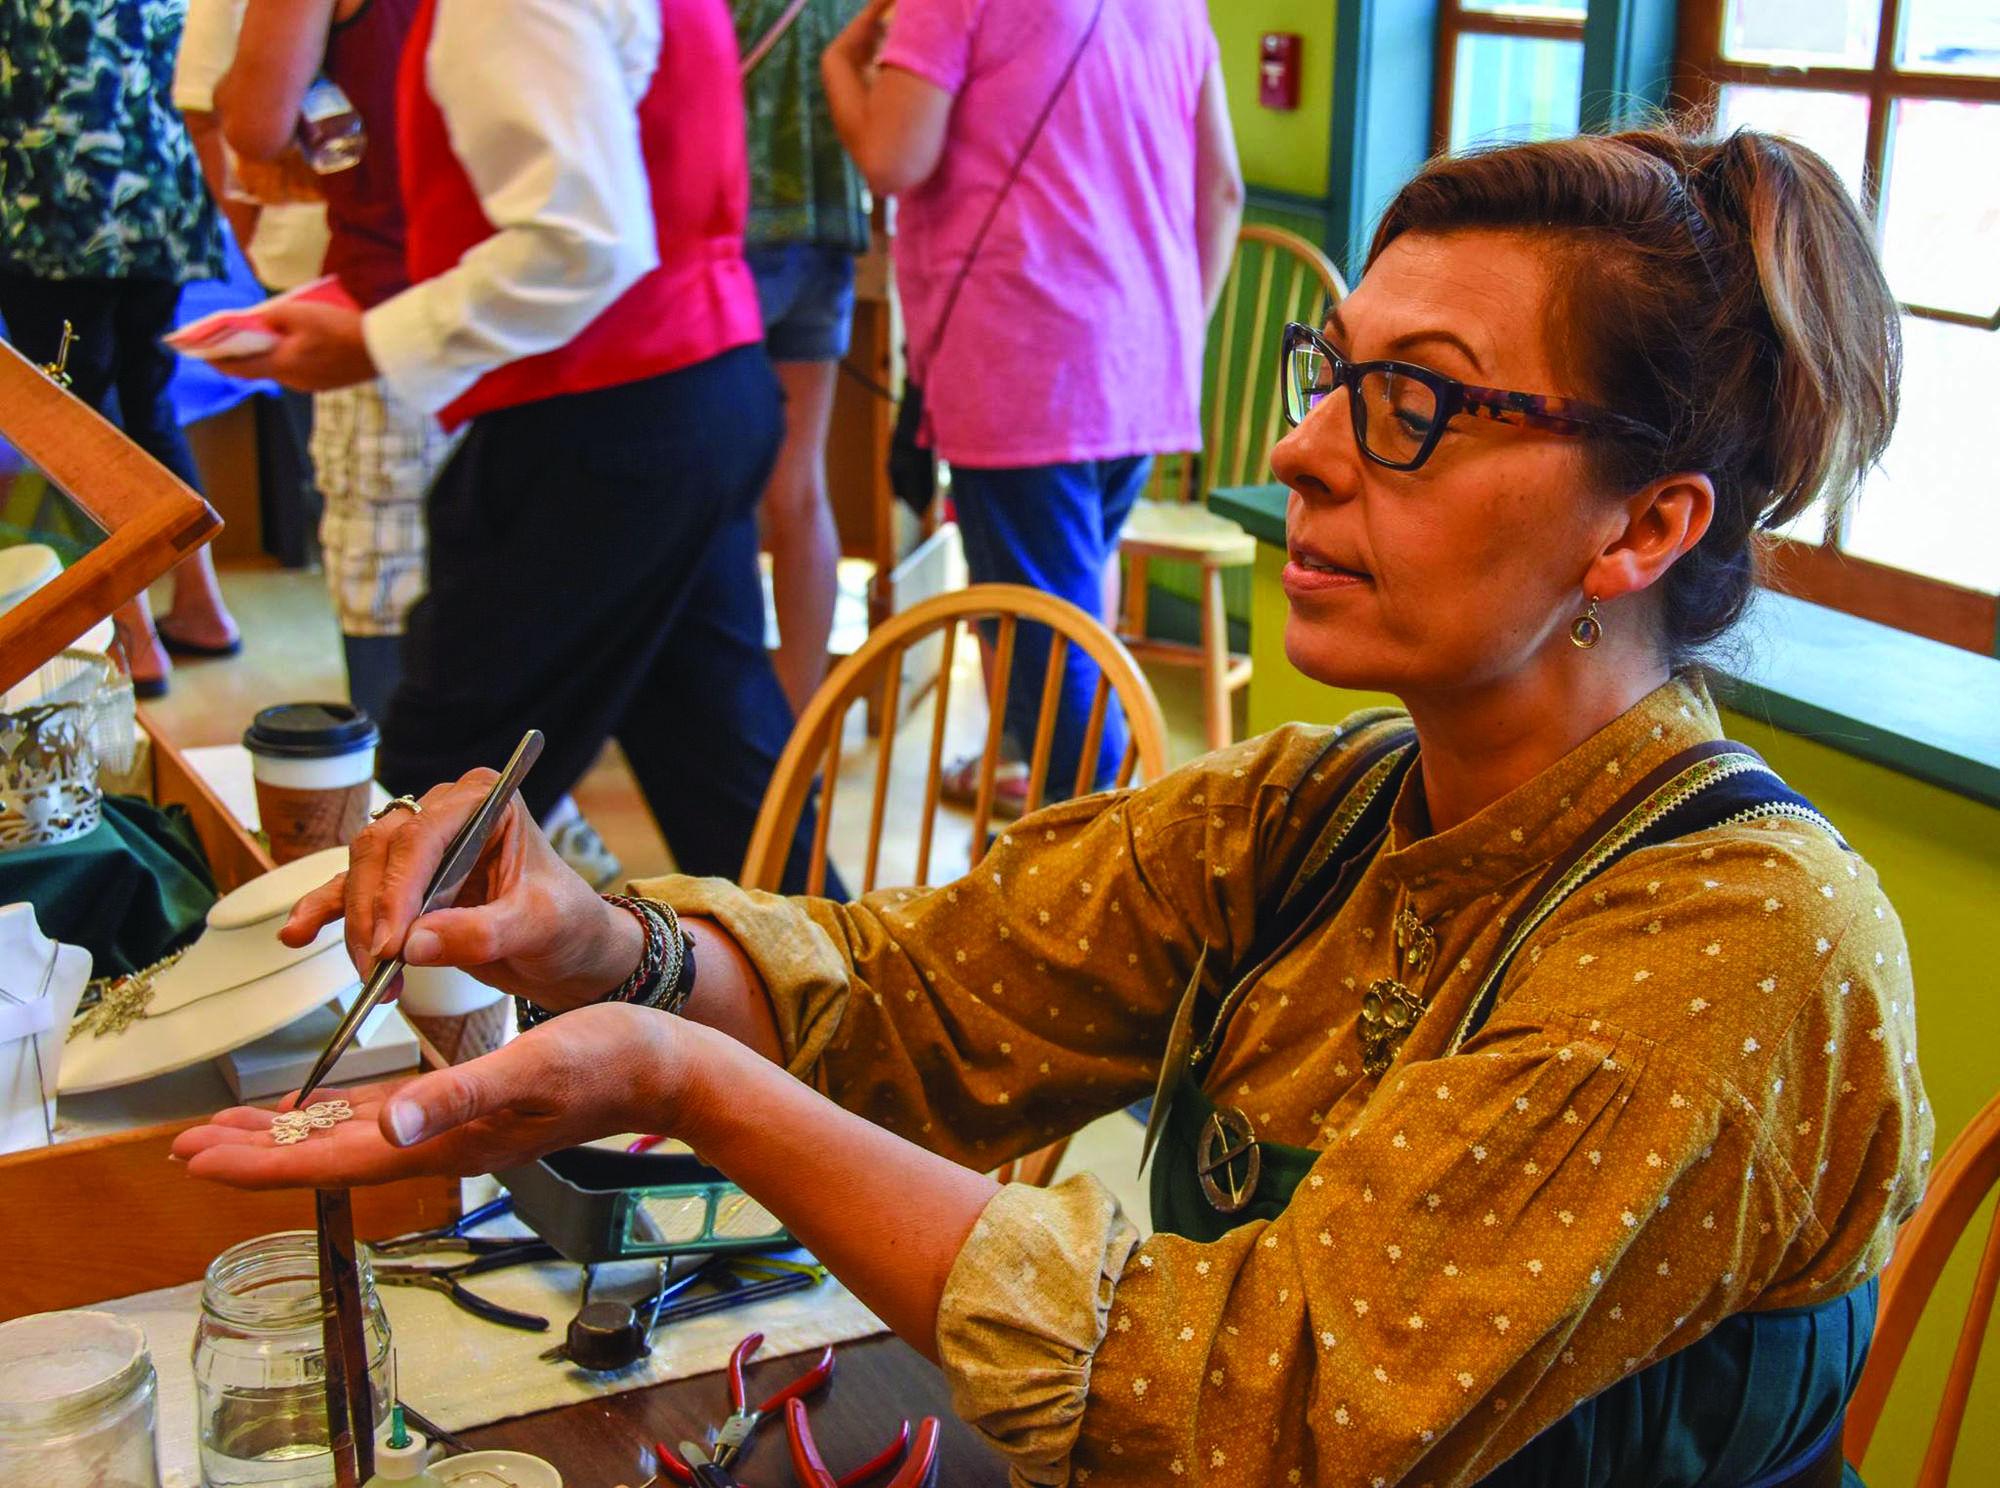 Liz Burcheit leads workshops in making traditional Nordic jewelry.